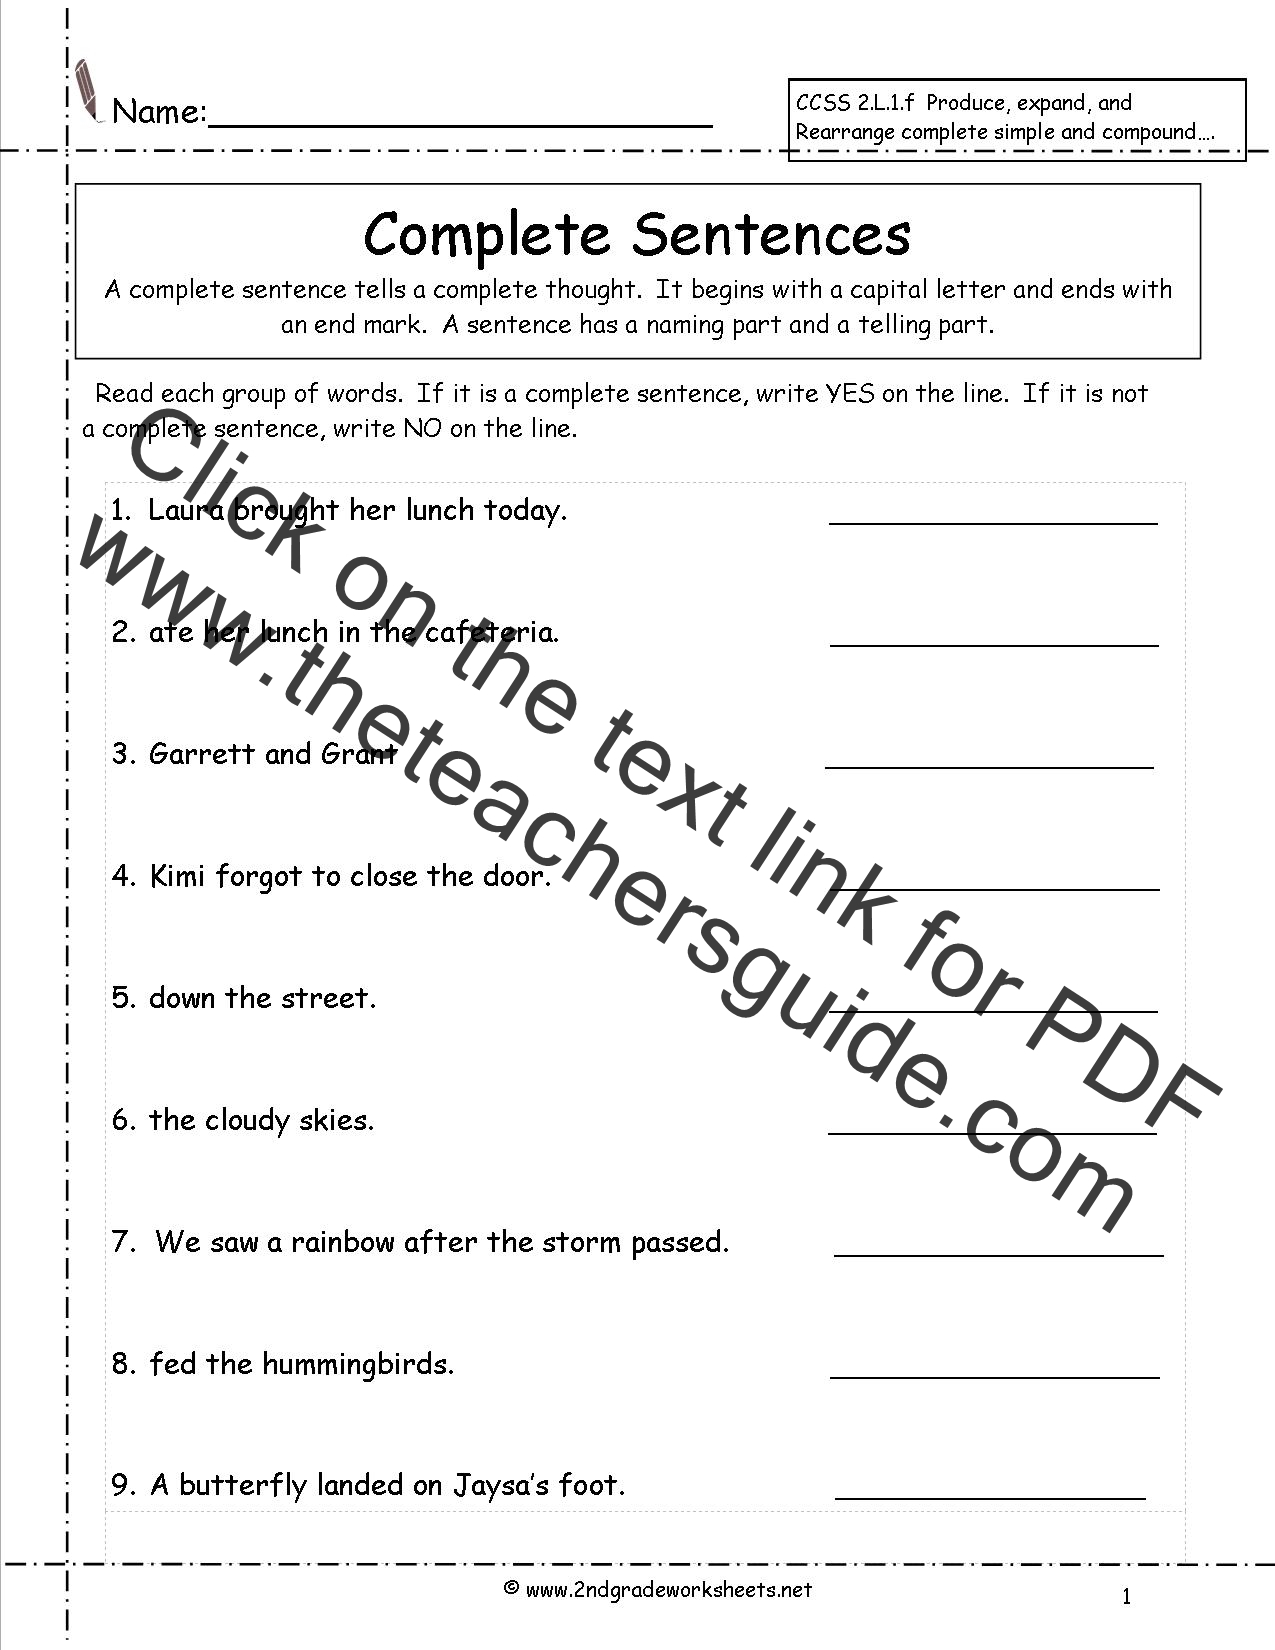 Printables Compound Sentences Worksheet second grade sentences worksheets ccss 2 l 1 f complete worksheets